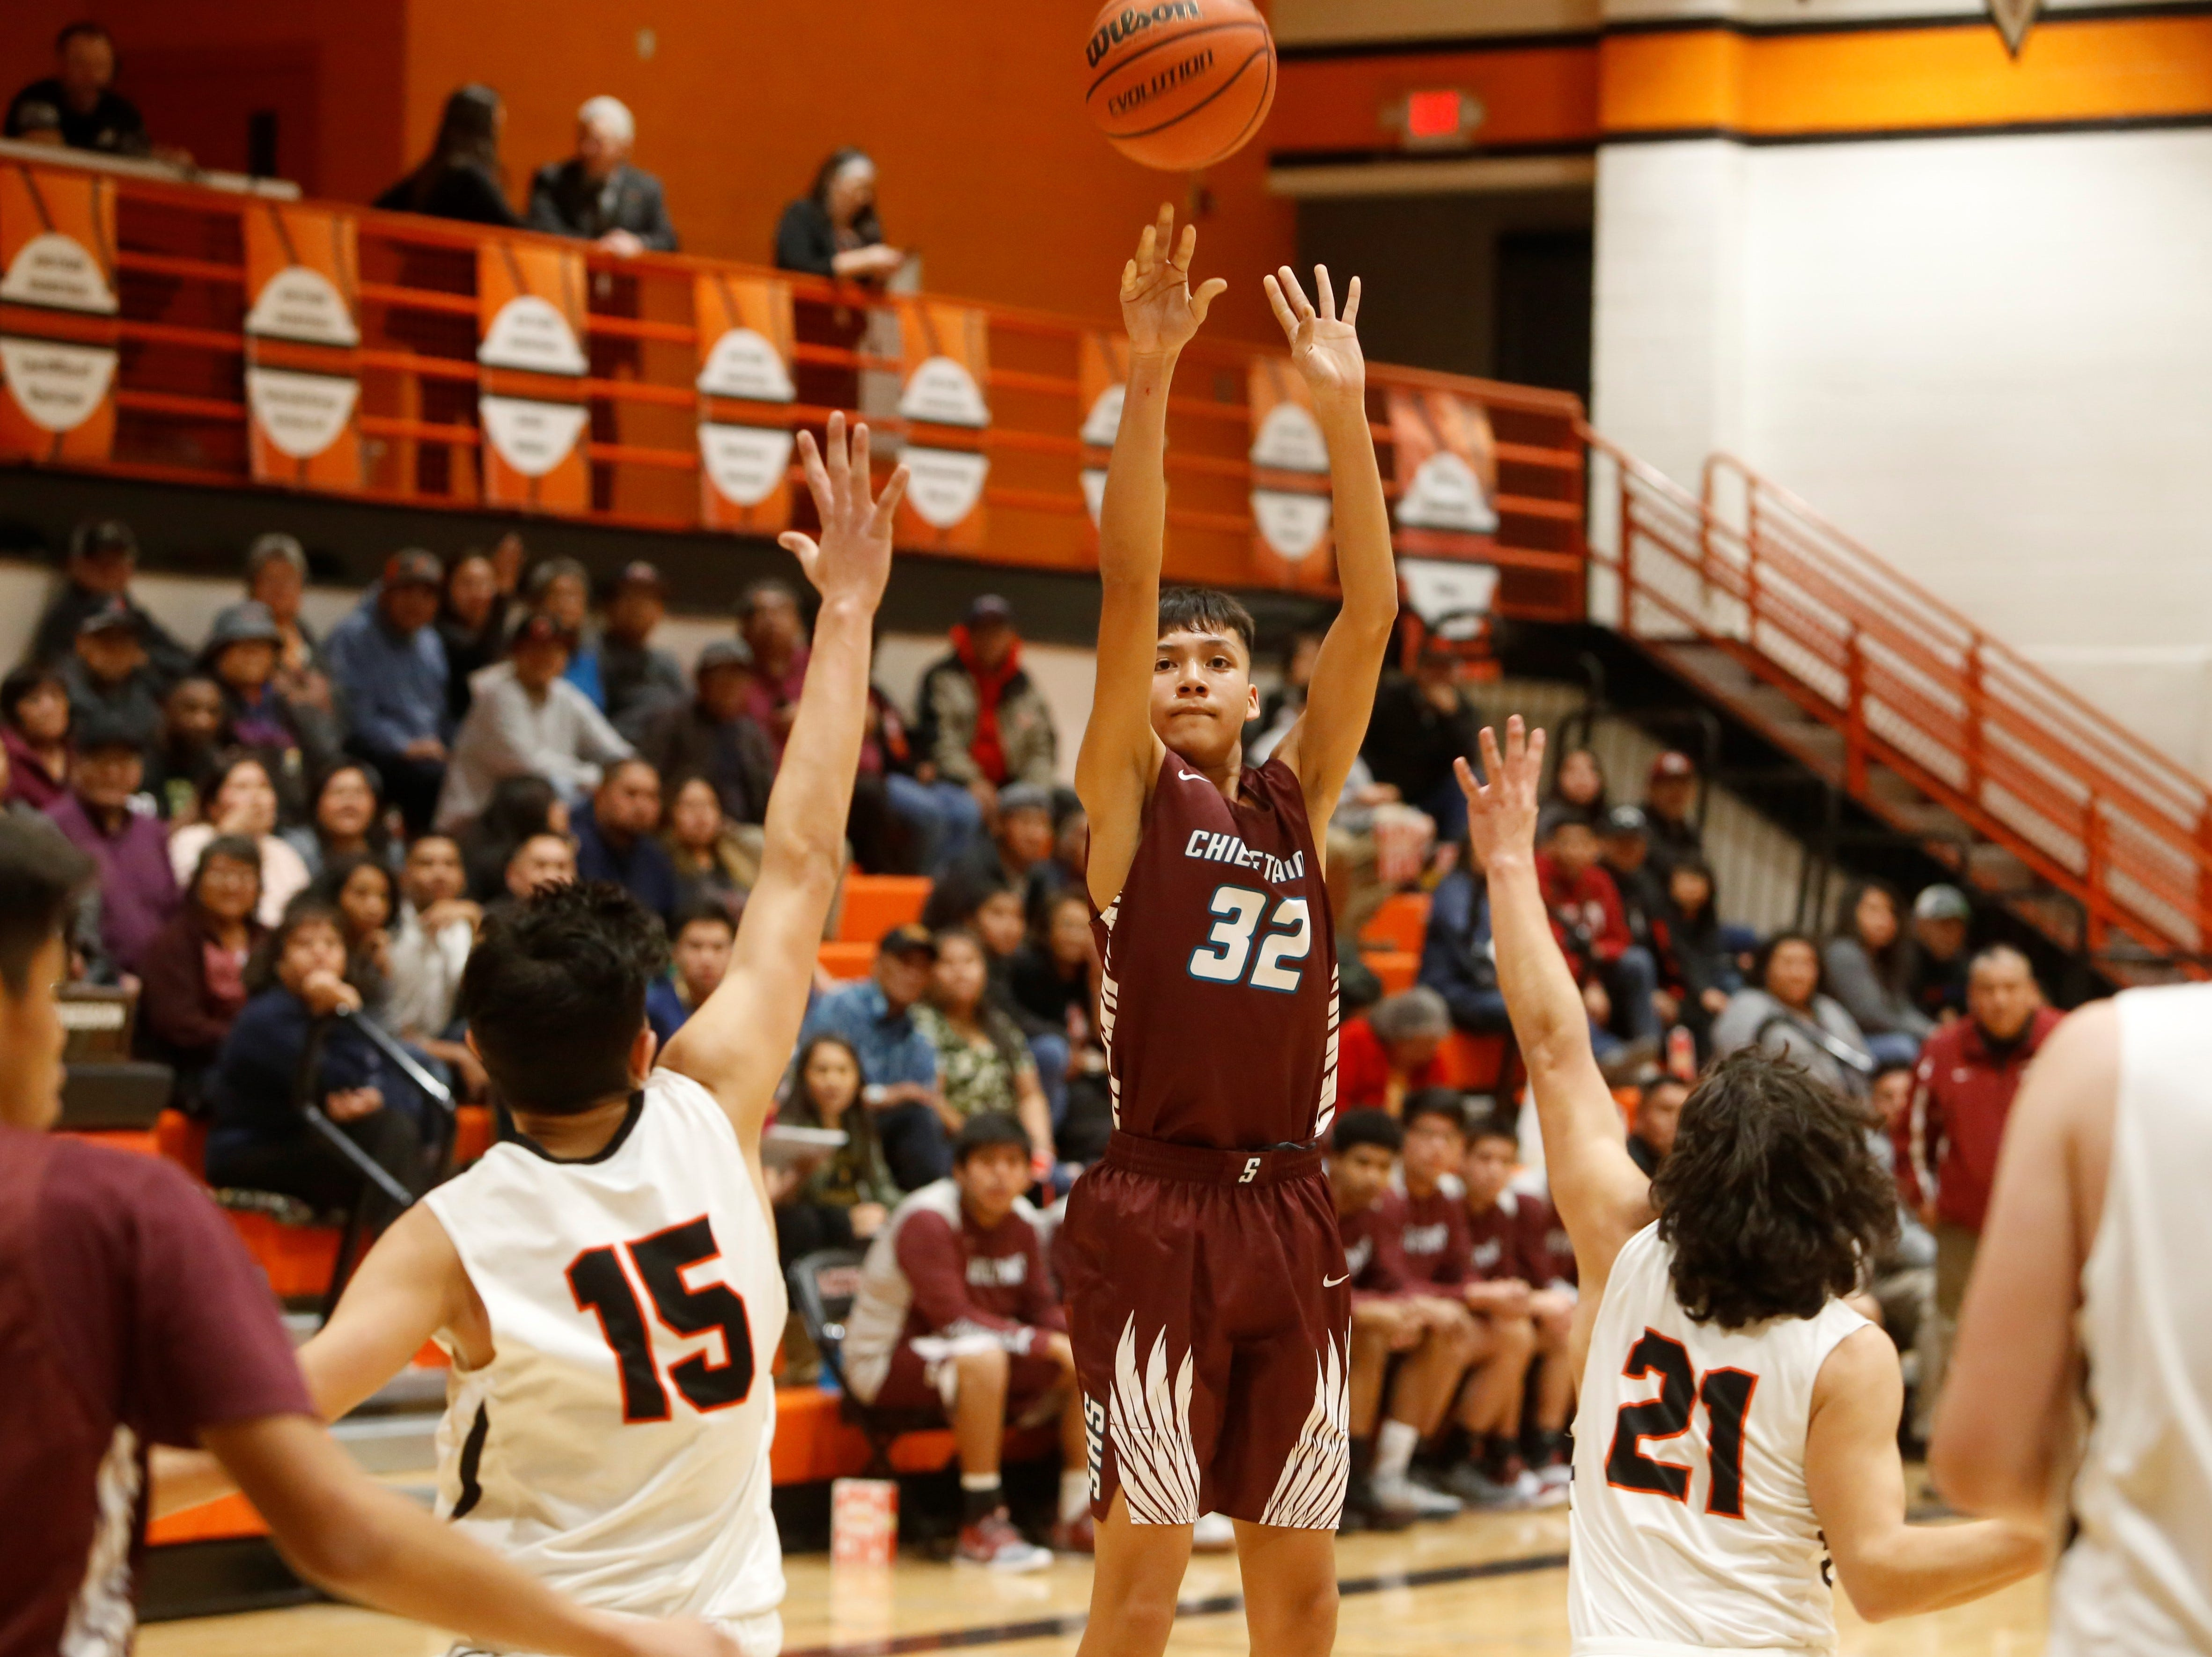 Shiprock's Shannon Dale fires a 3-pointer against Aztec during Thursday's District 1-4A game at Lillywhite Gym in Aztec.